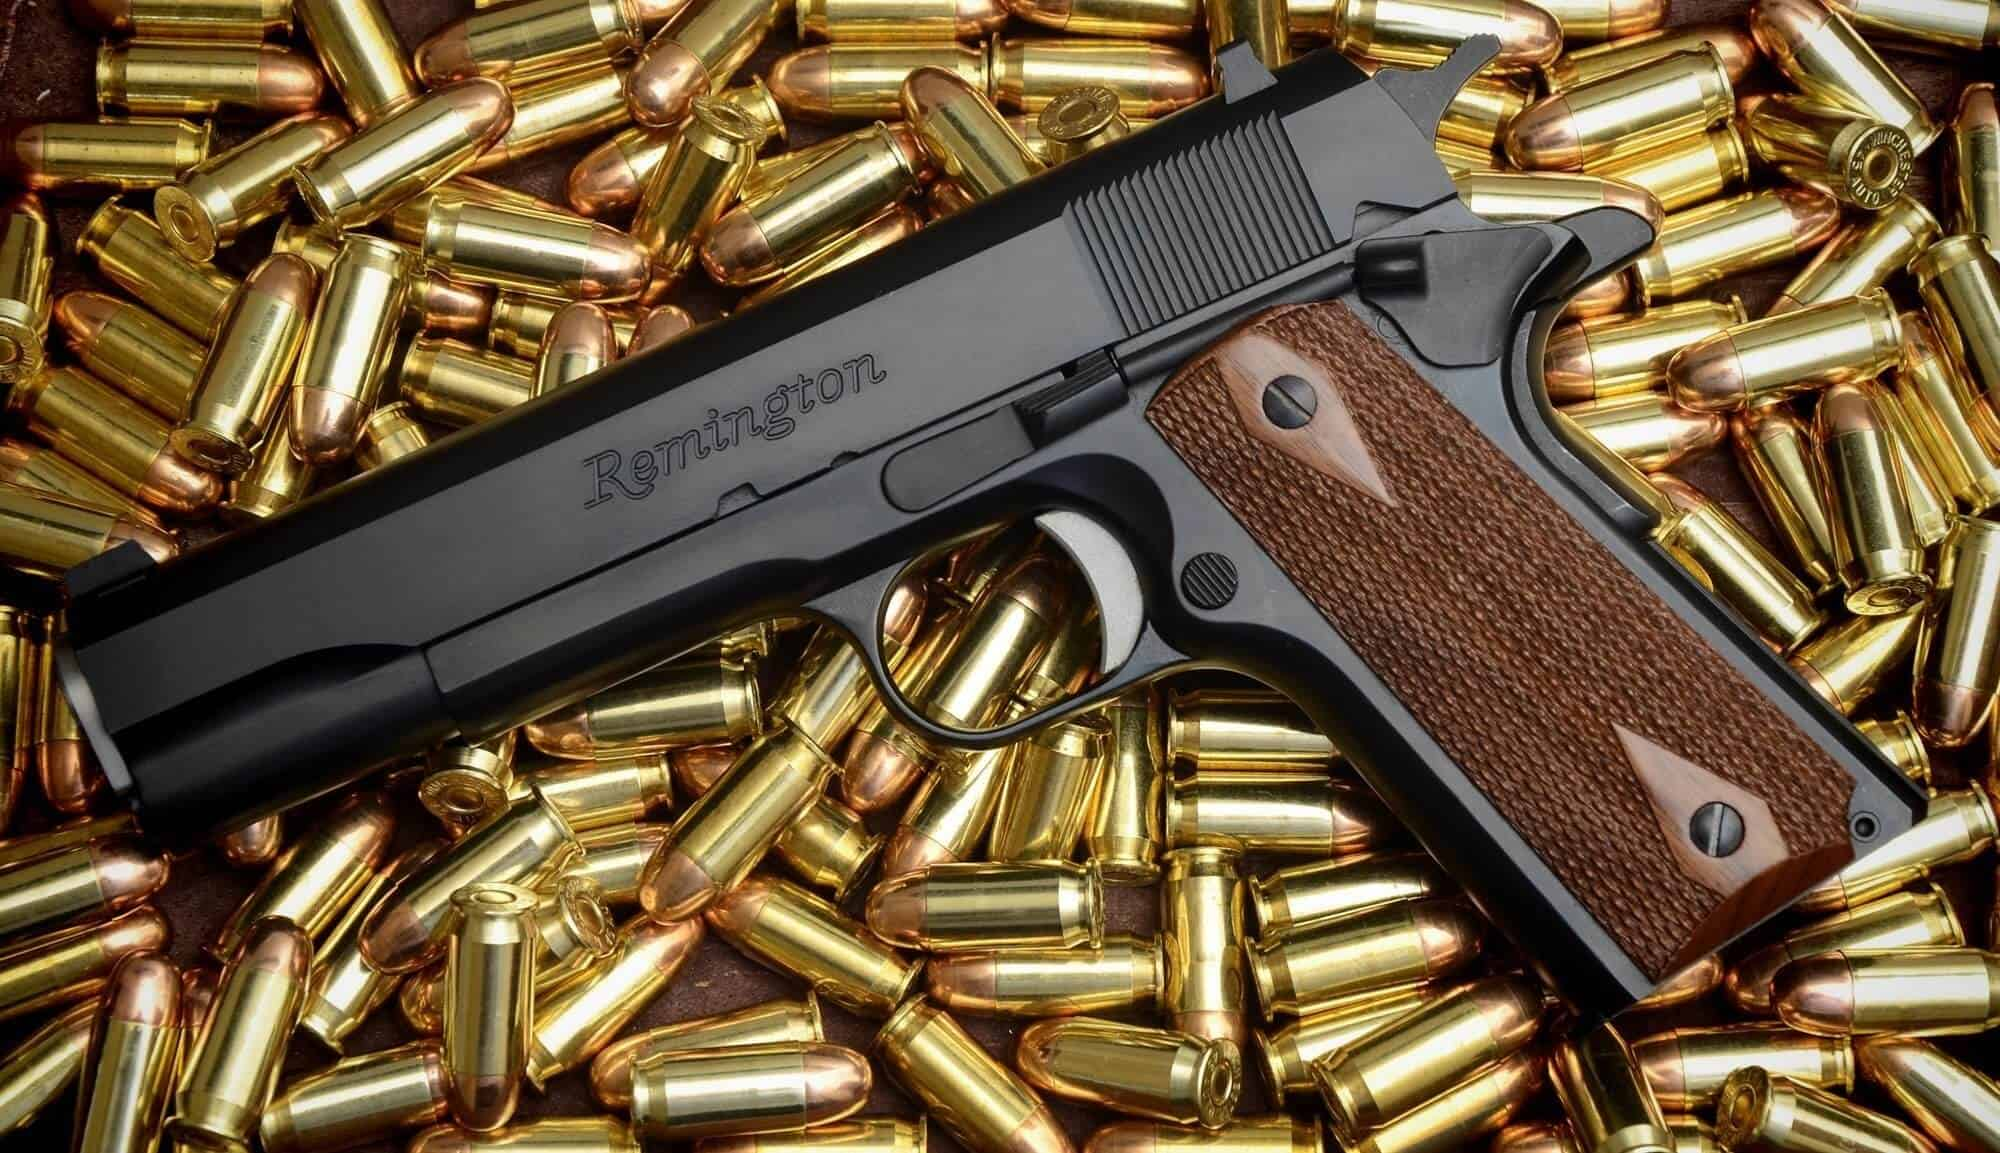 Gun safety is much more than owning a weapon and ammo